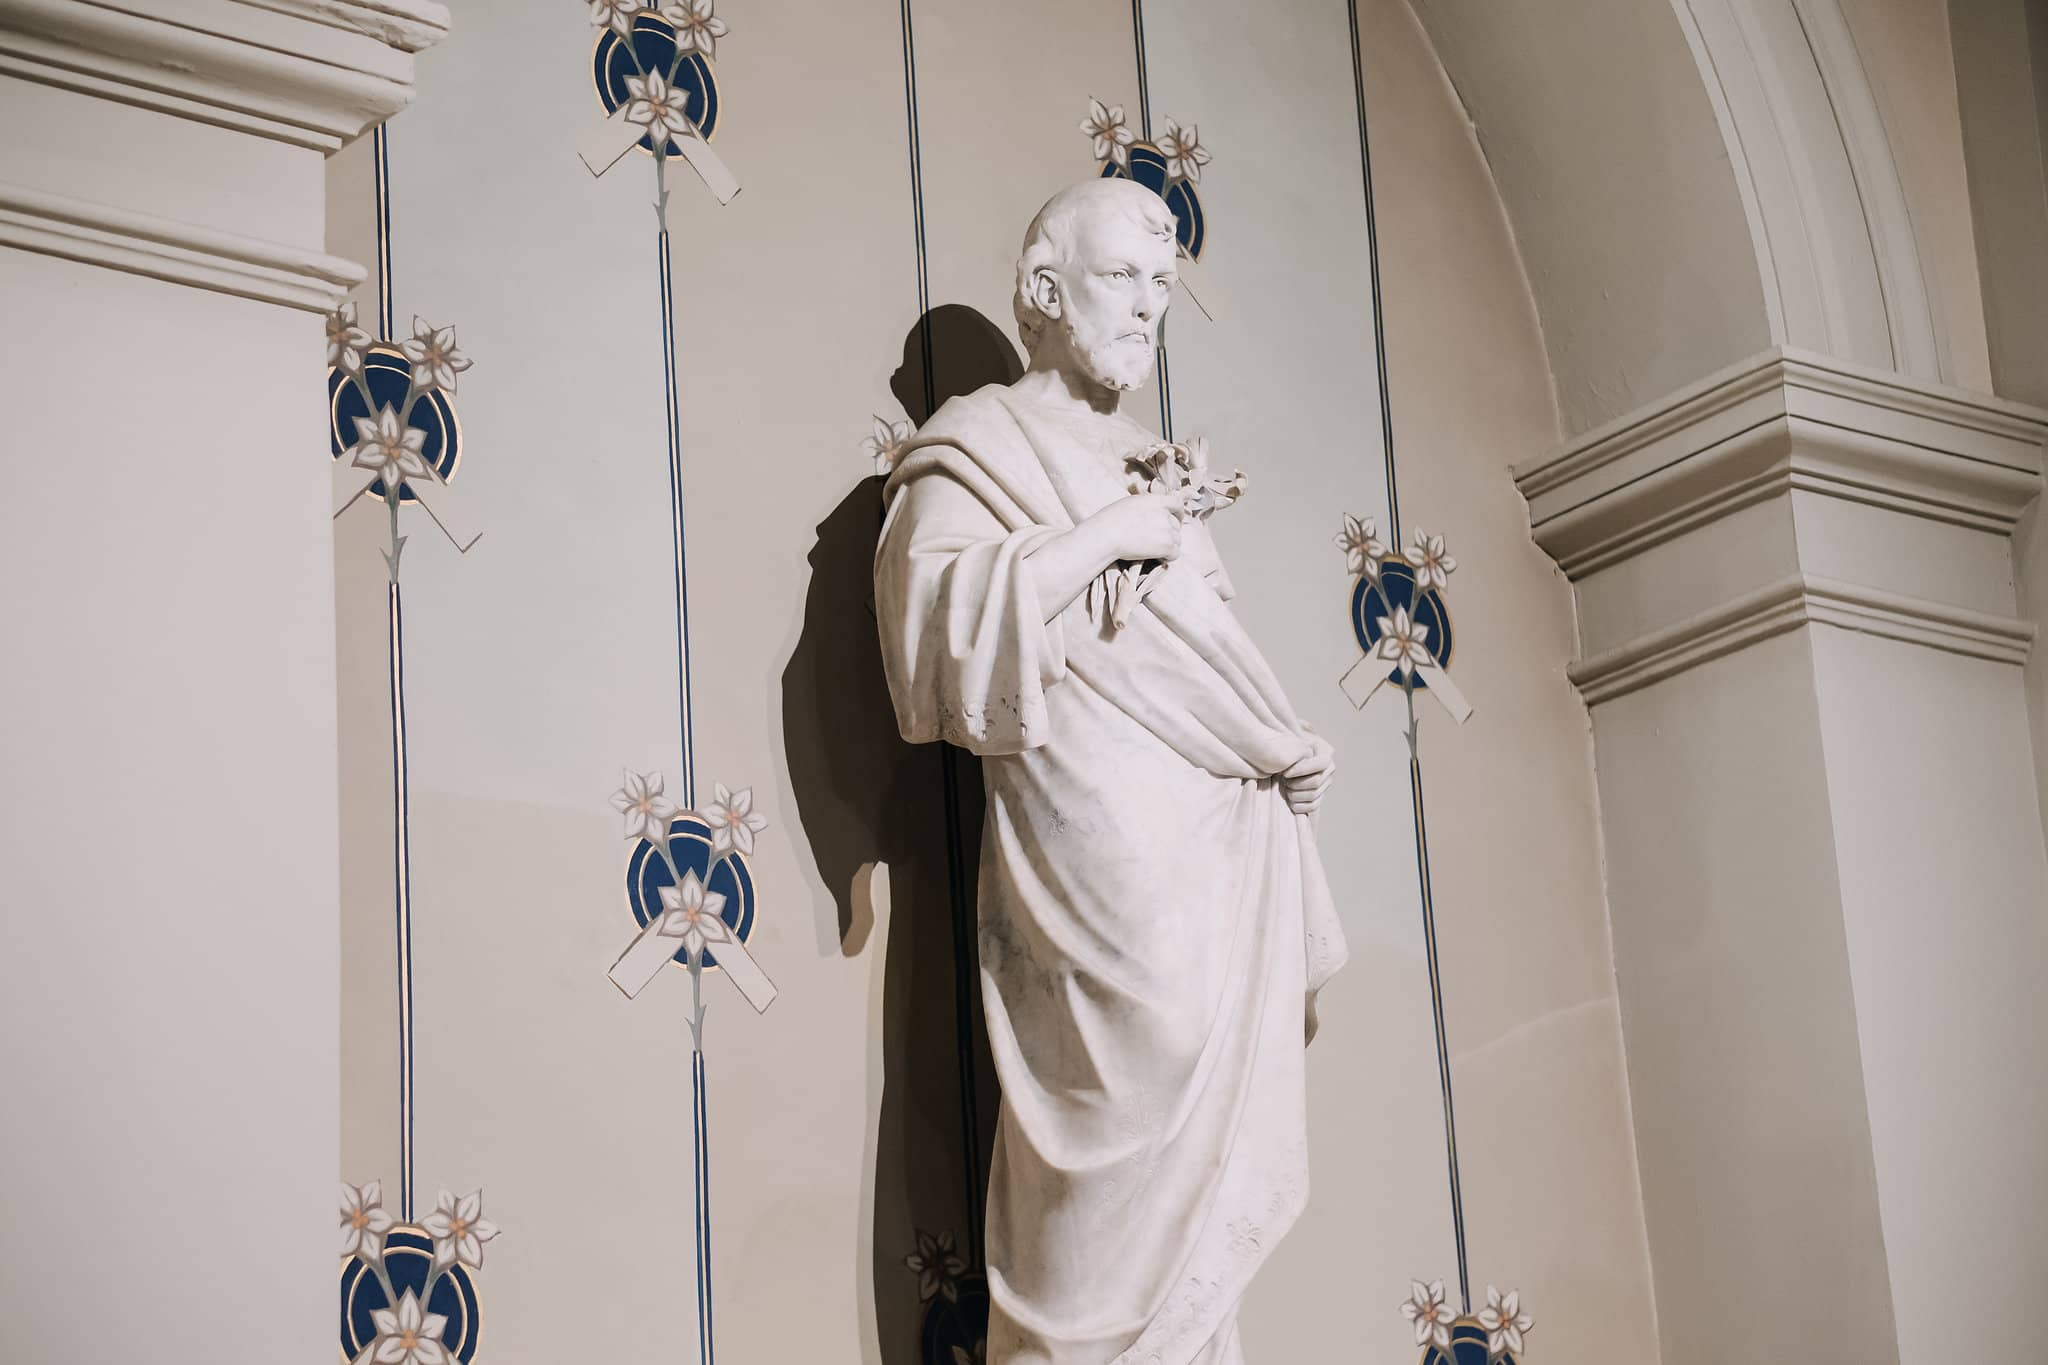 st-joseph-statue-architecture-st-francis-de-sales-church-new-york-city.jpg